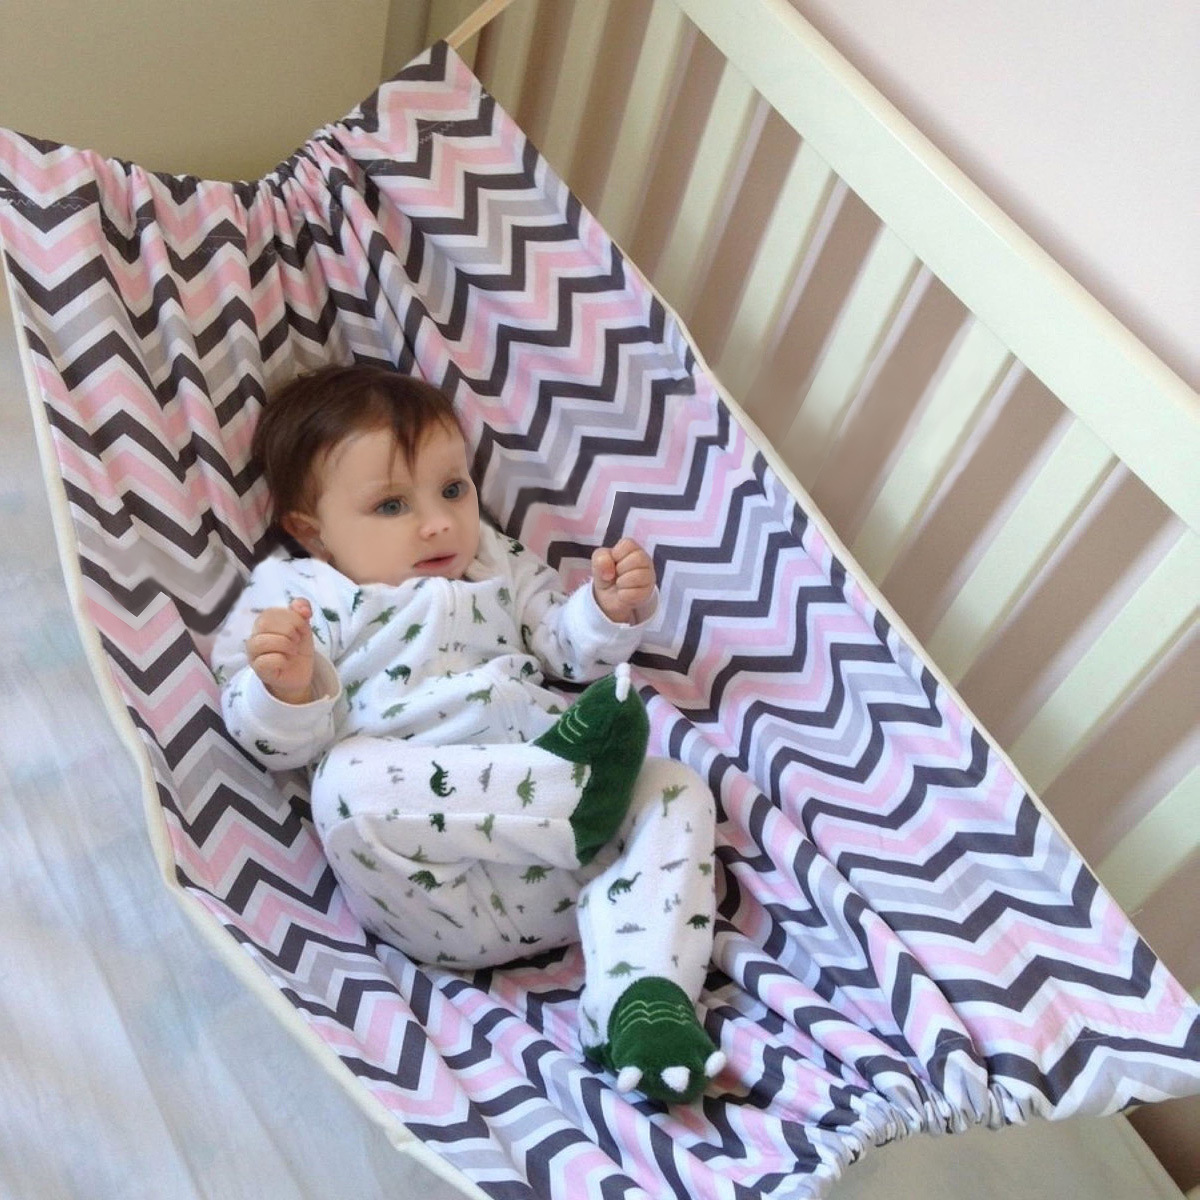 Baby Hammock Family Removable Portable Bed Kit